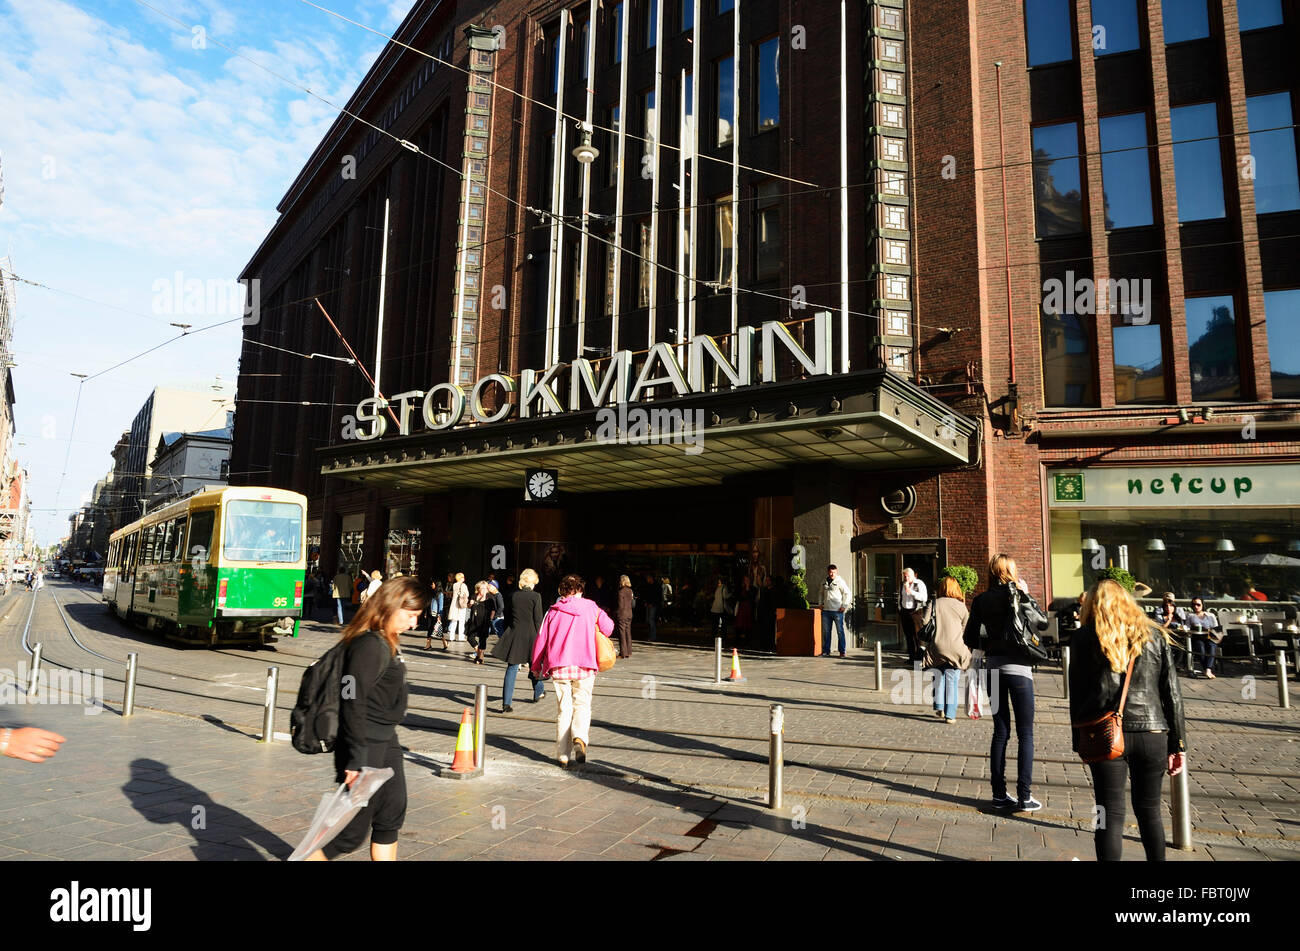 Stockmann Helsinki Laukut : Stockmann helsinki city center department store was